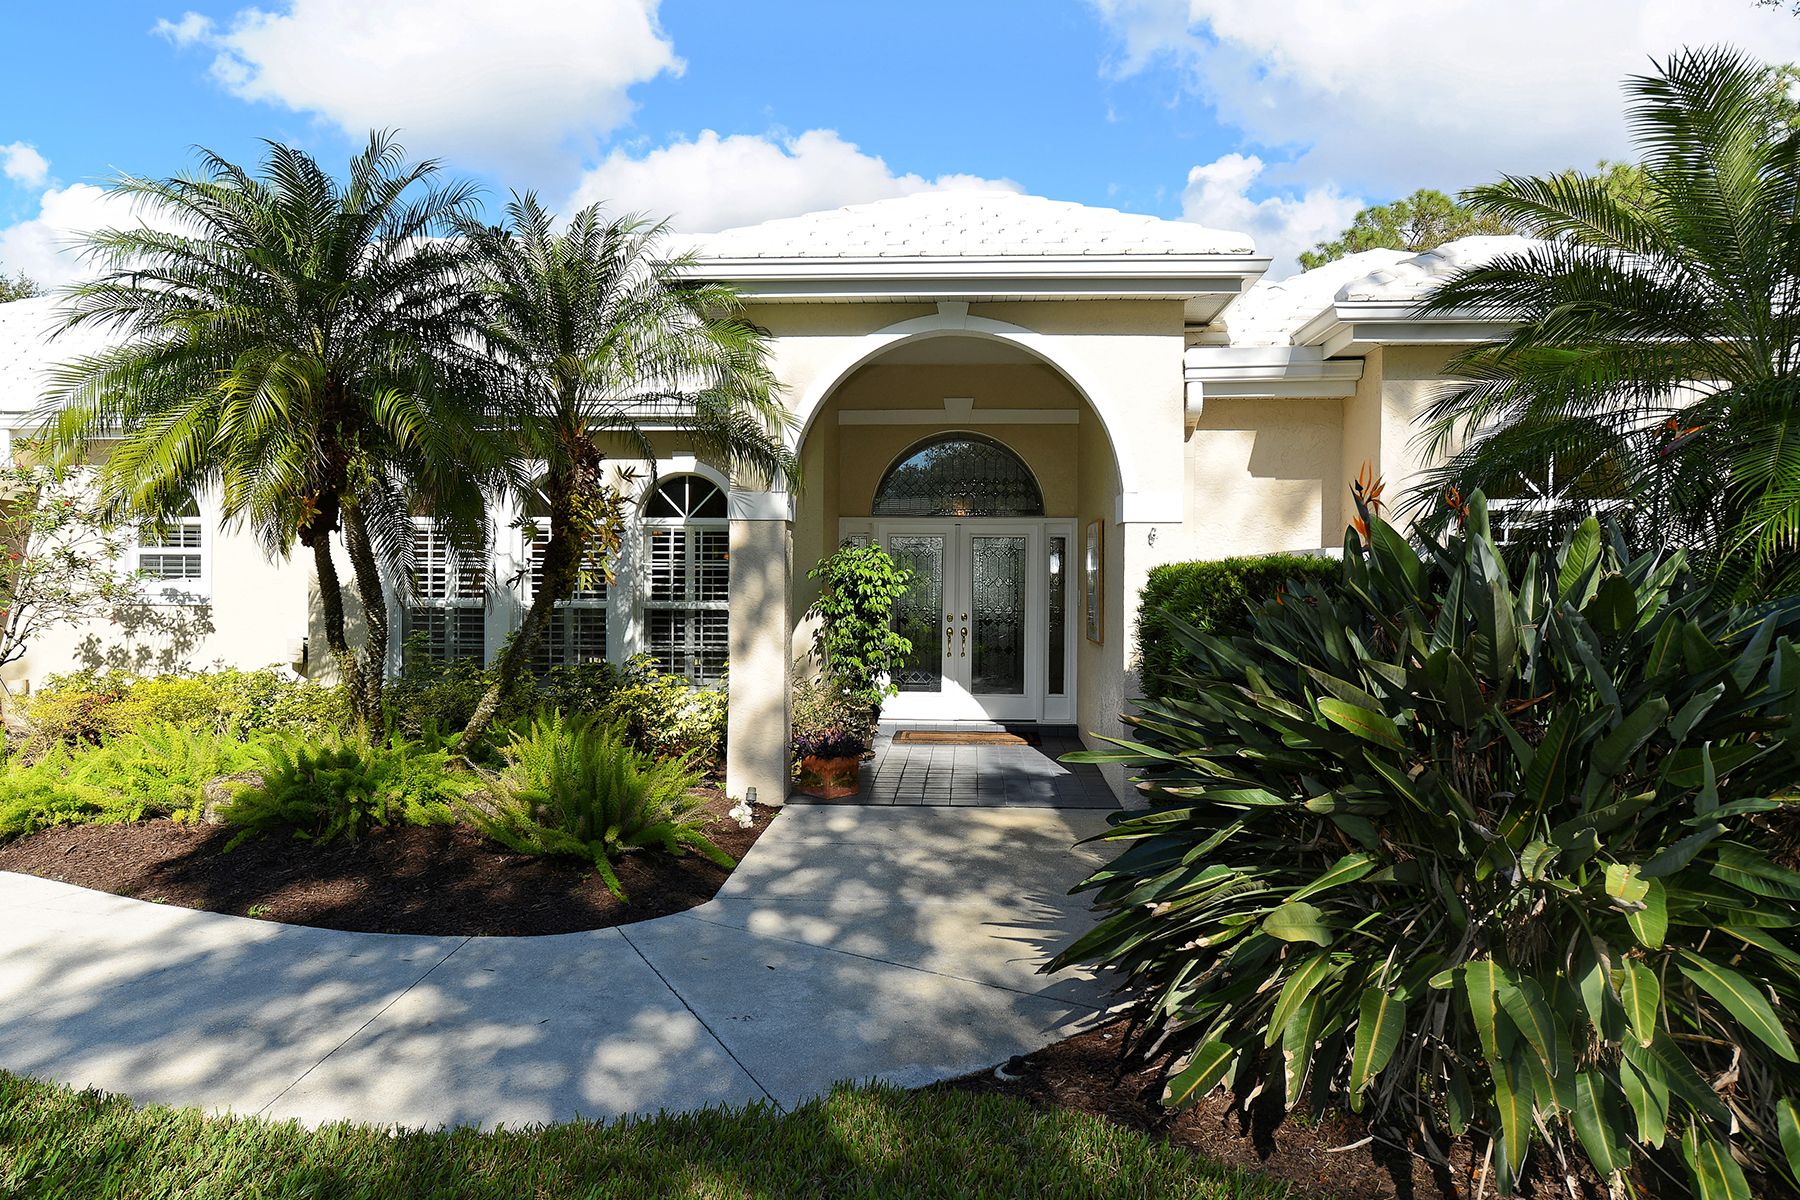 Single Family Home for Sale at LAUREL OAK ESTATES 3249 Walter Travis Dr, Sarasota, Florida, 34240 United States